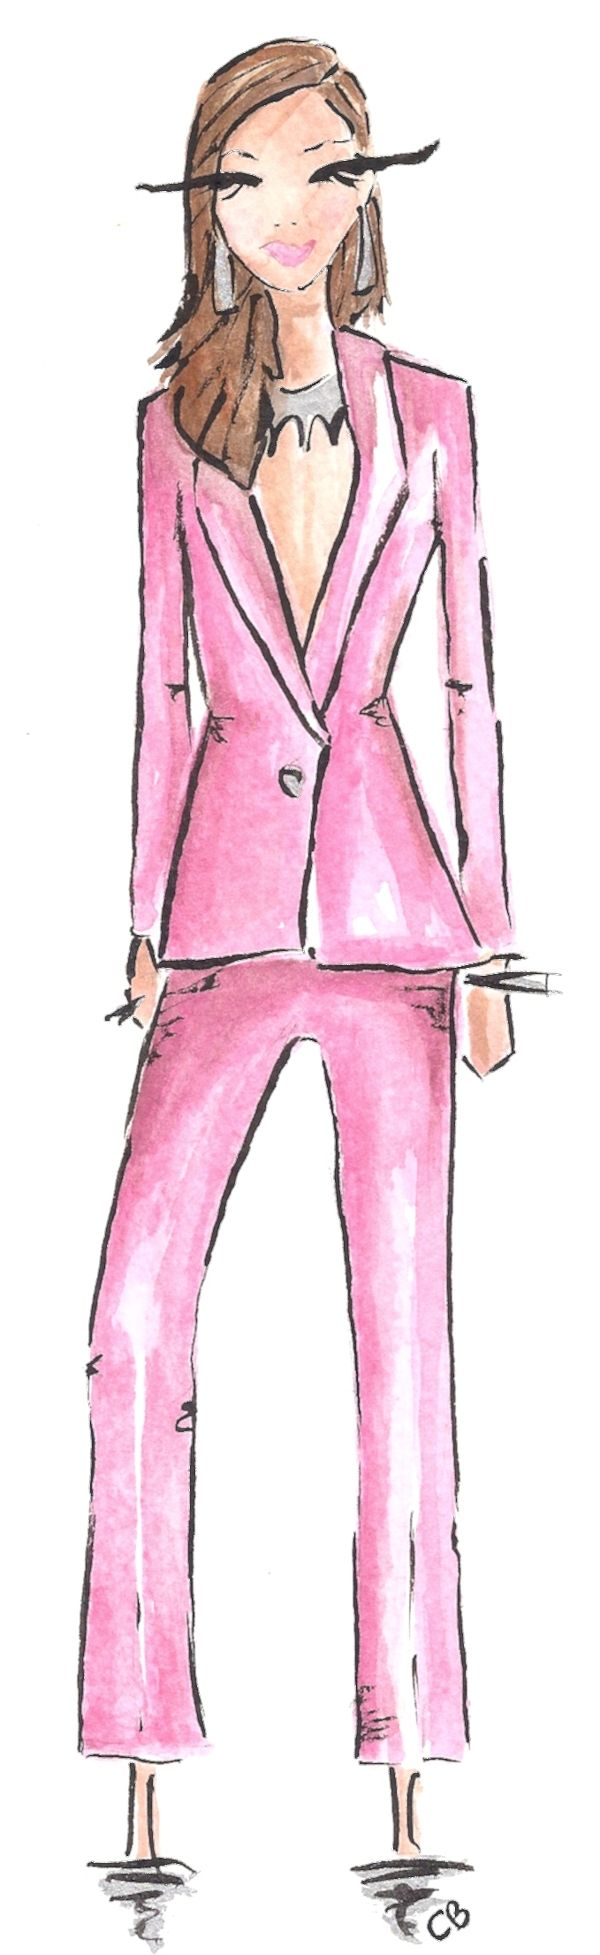 Carrie Beth Taylor - Fashion Illustration by Carrie Beth Taylor